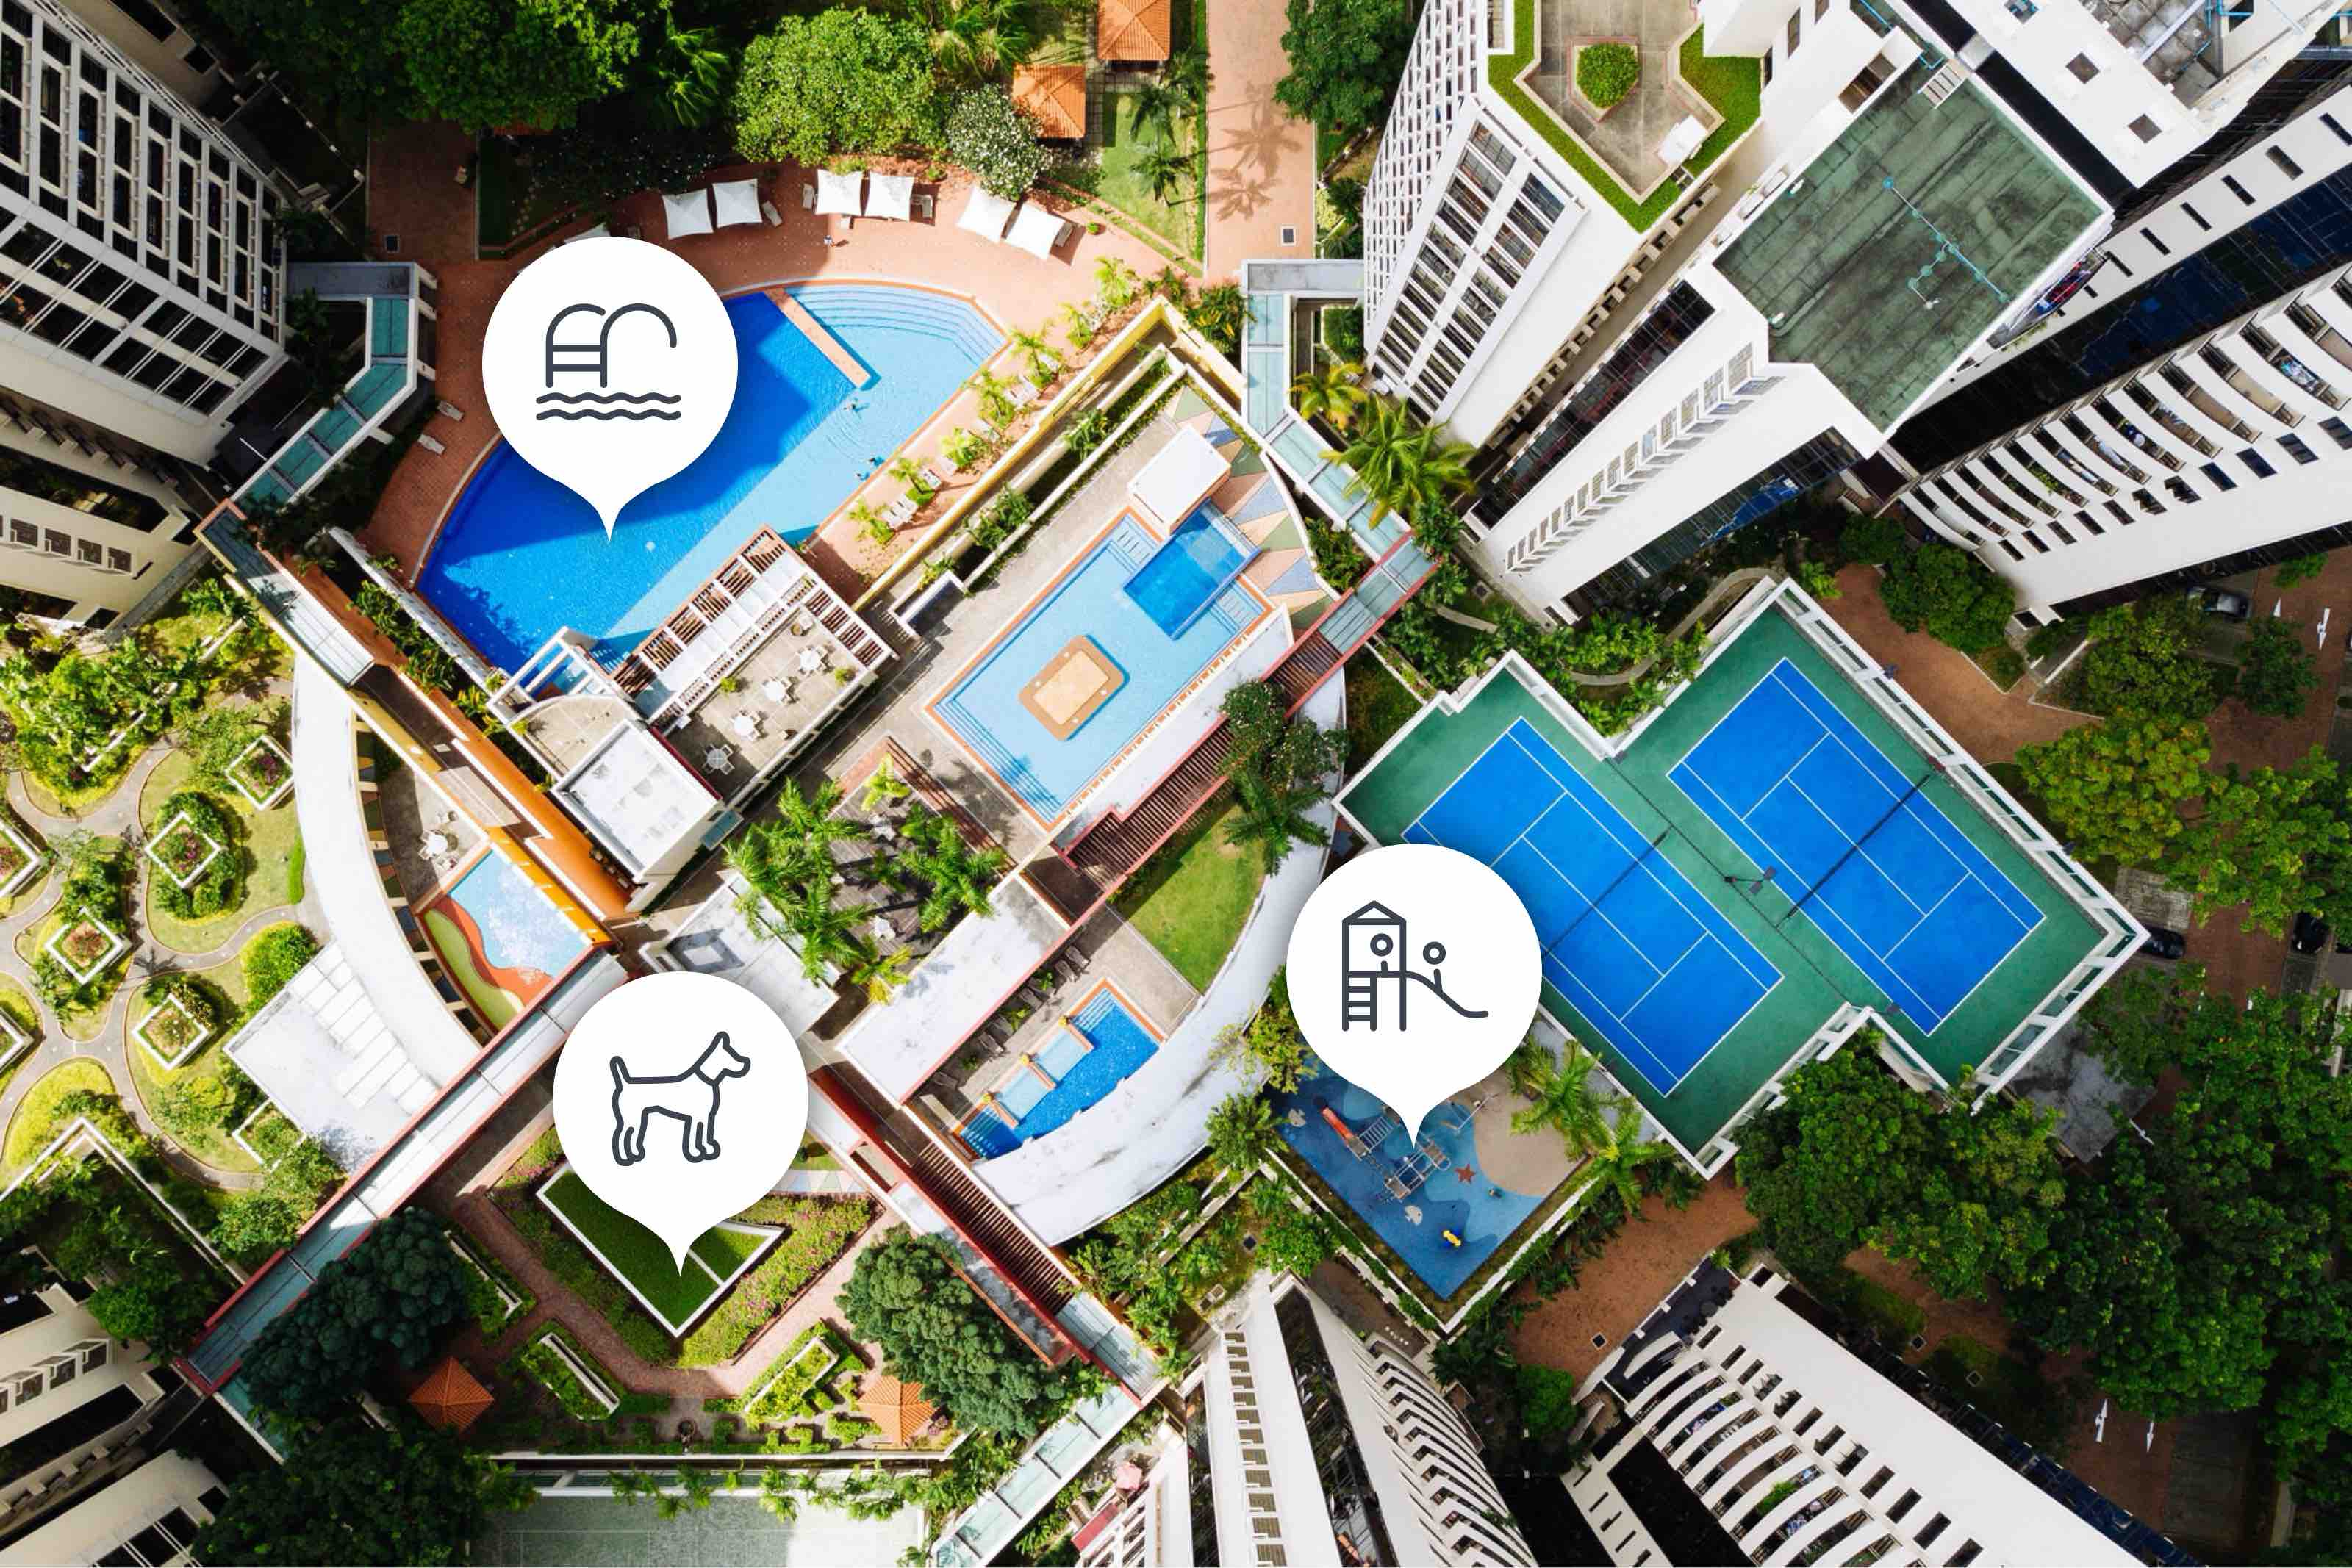 Aerial view of a high-rise community with multiple buildings surrounding pools, tennis courts, and green spaces